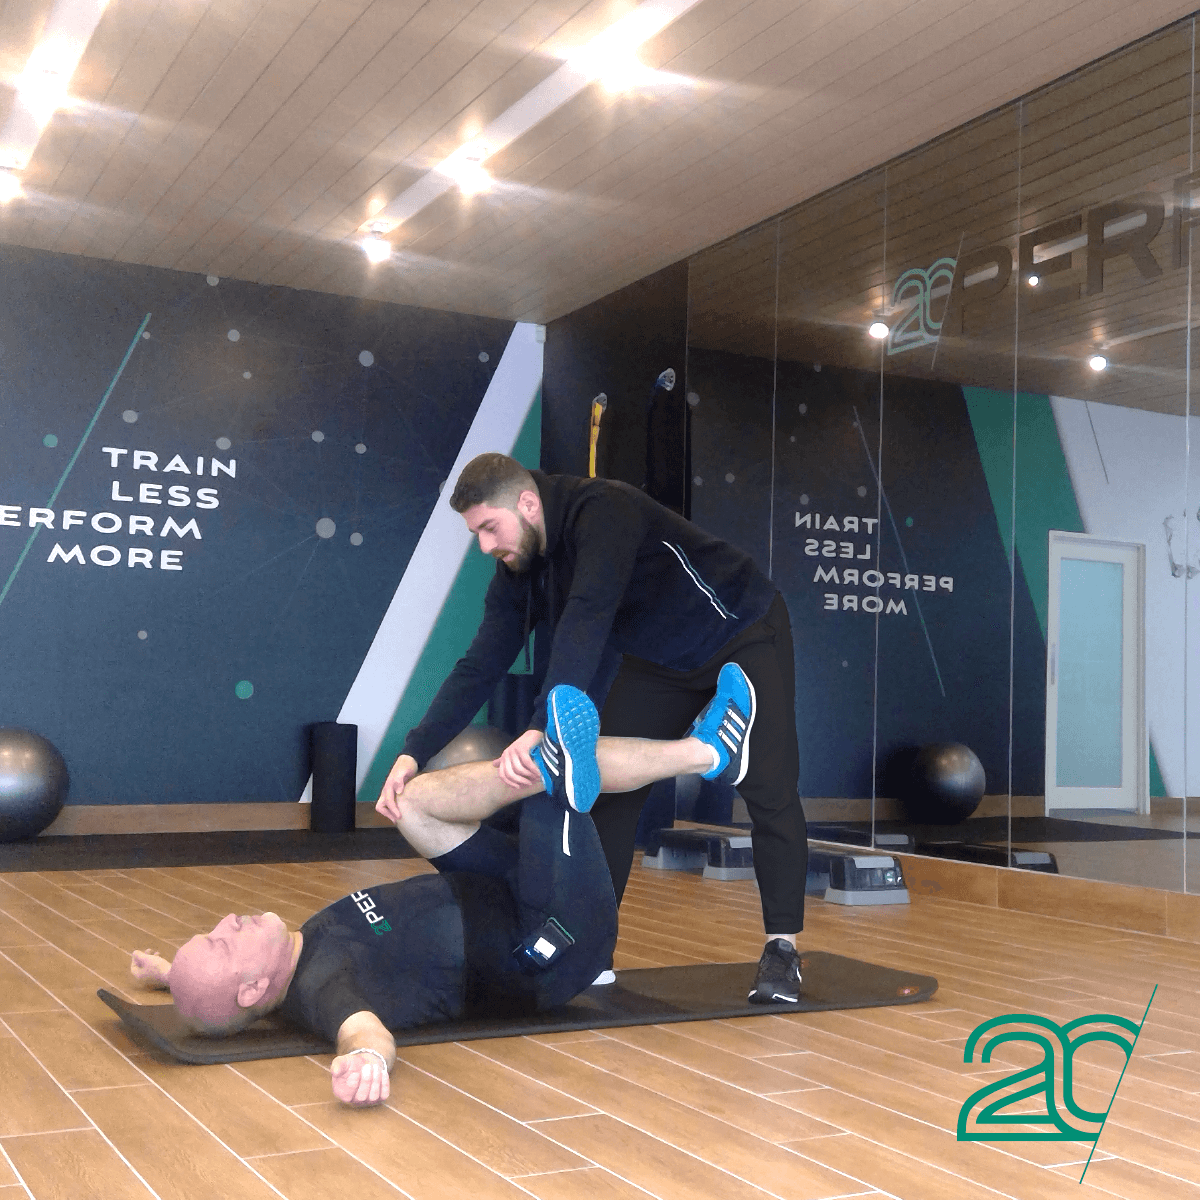 Man Getting Stretched by a Personal Trainer Using 20PerFit's EMS Technology